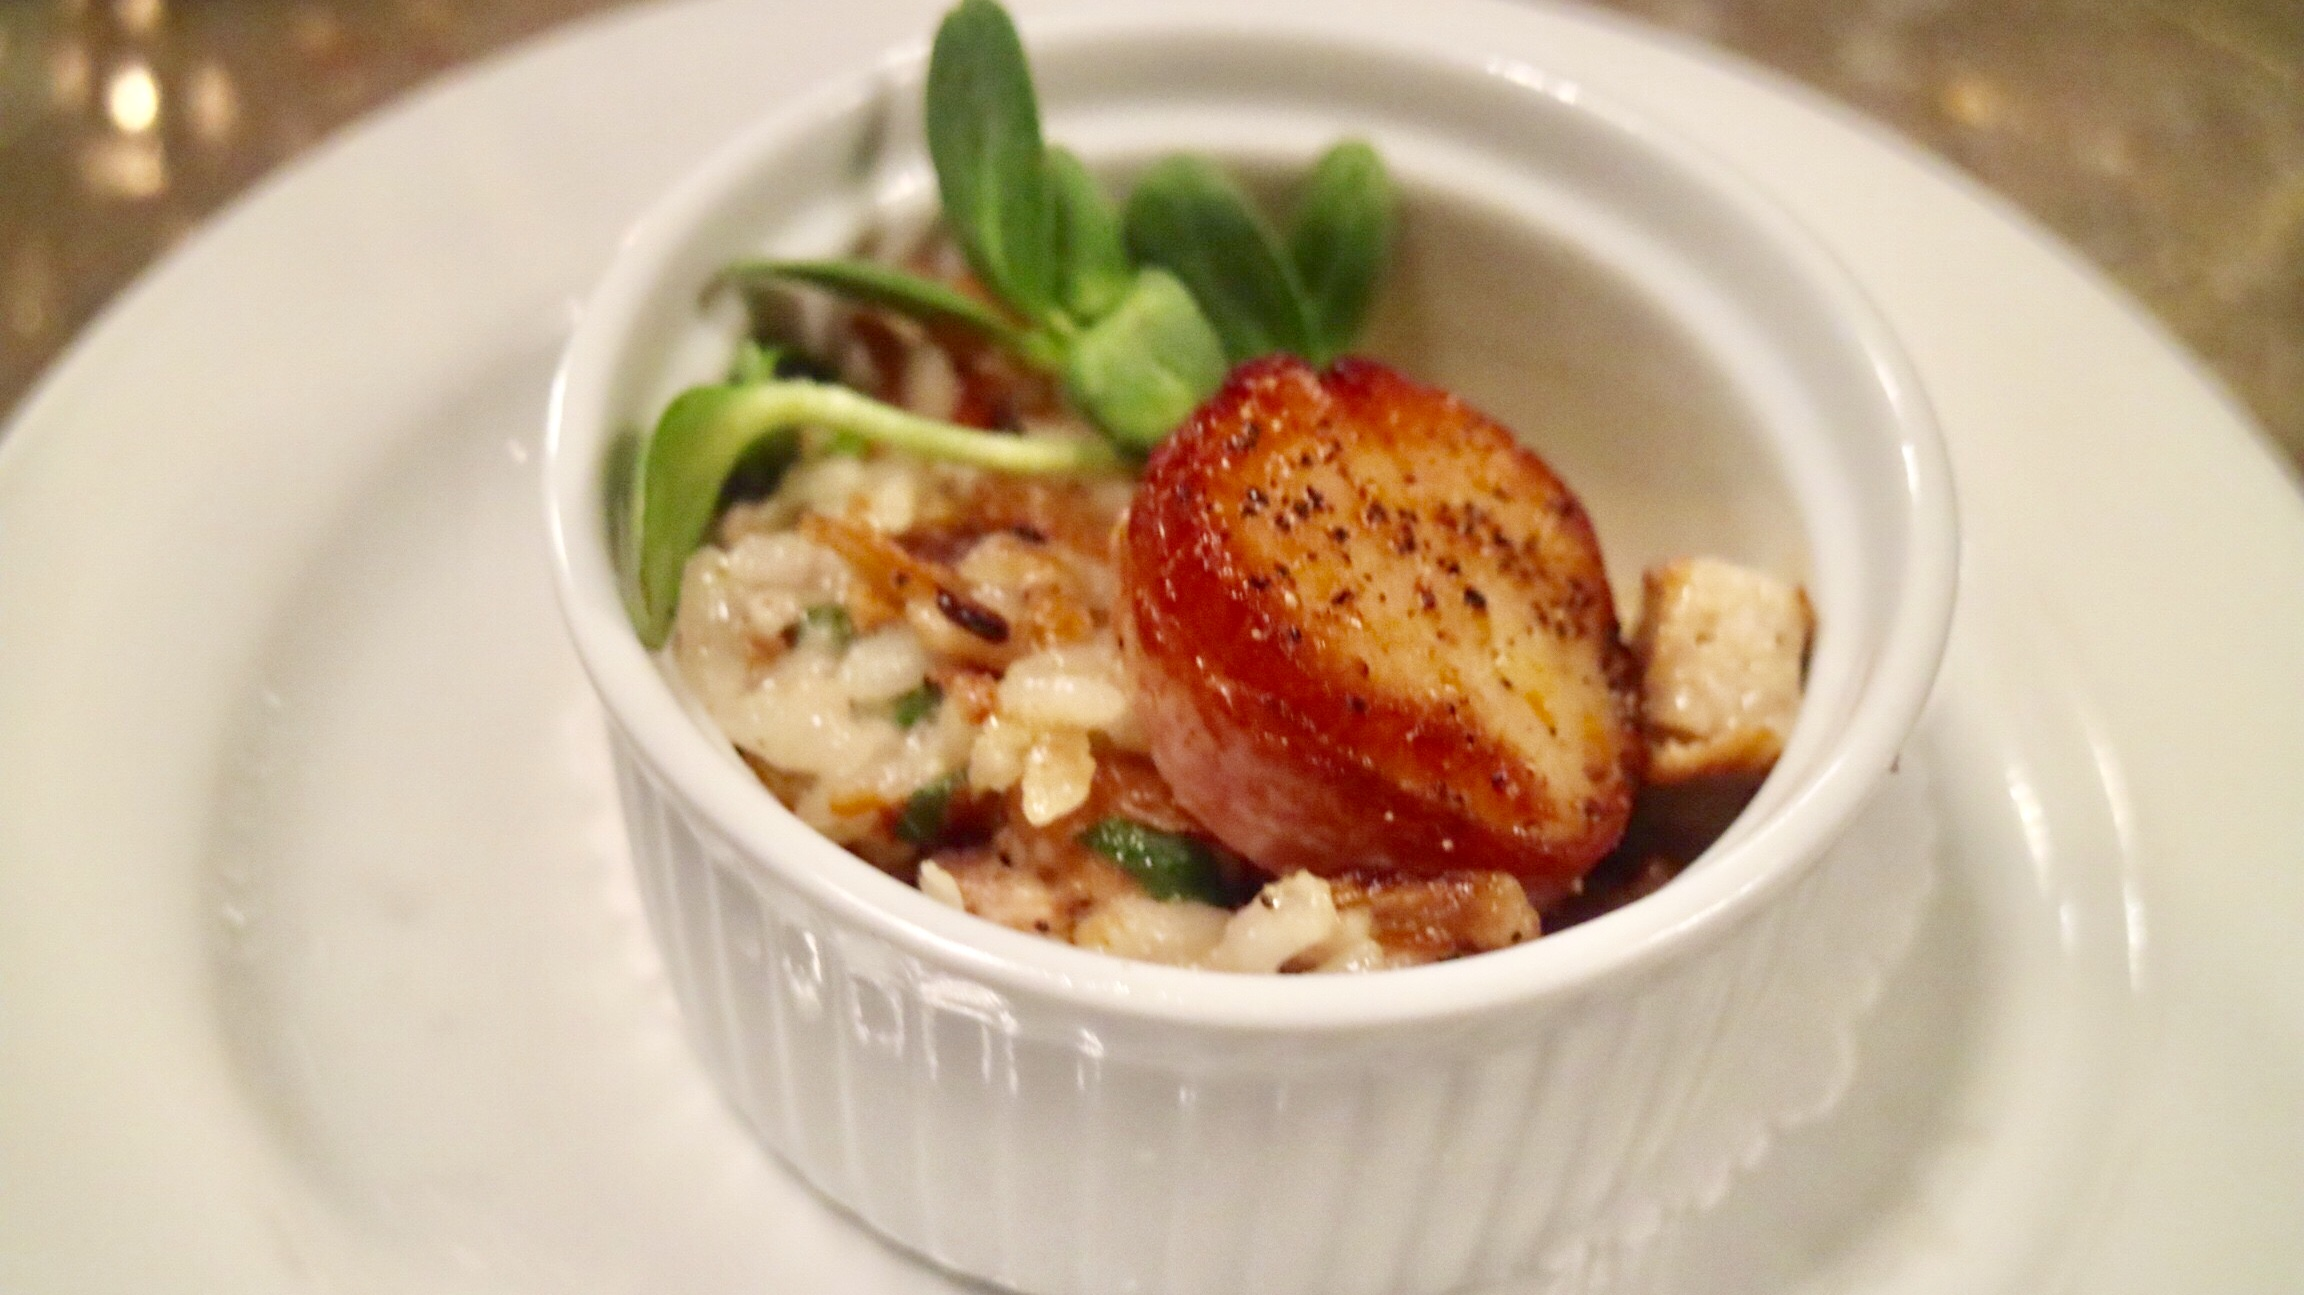 Seared Bacon Wrapped Scallop on Peking Duck Fried Risotto